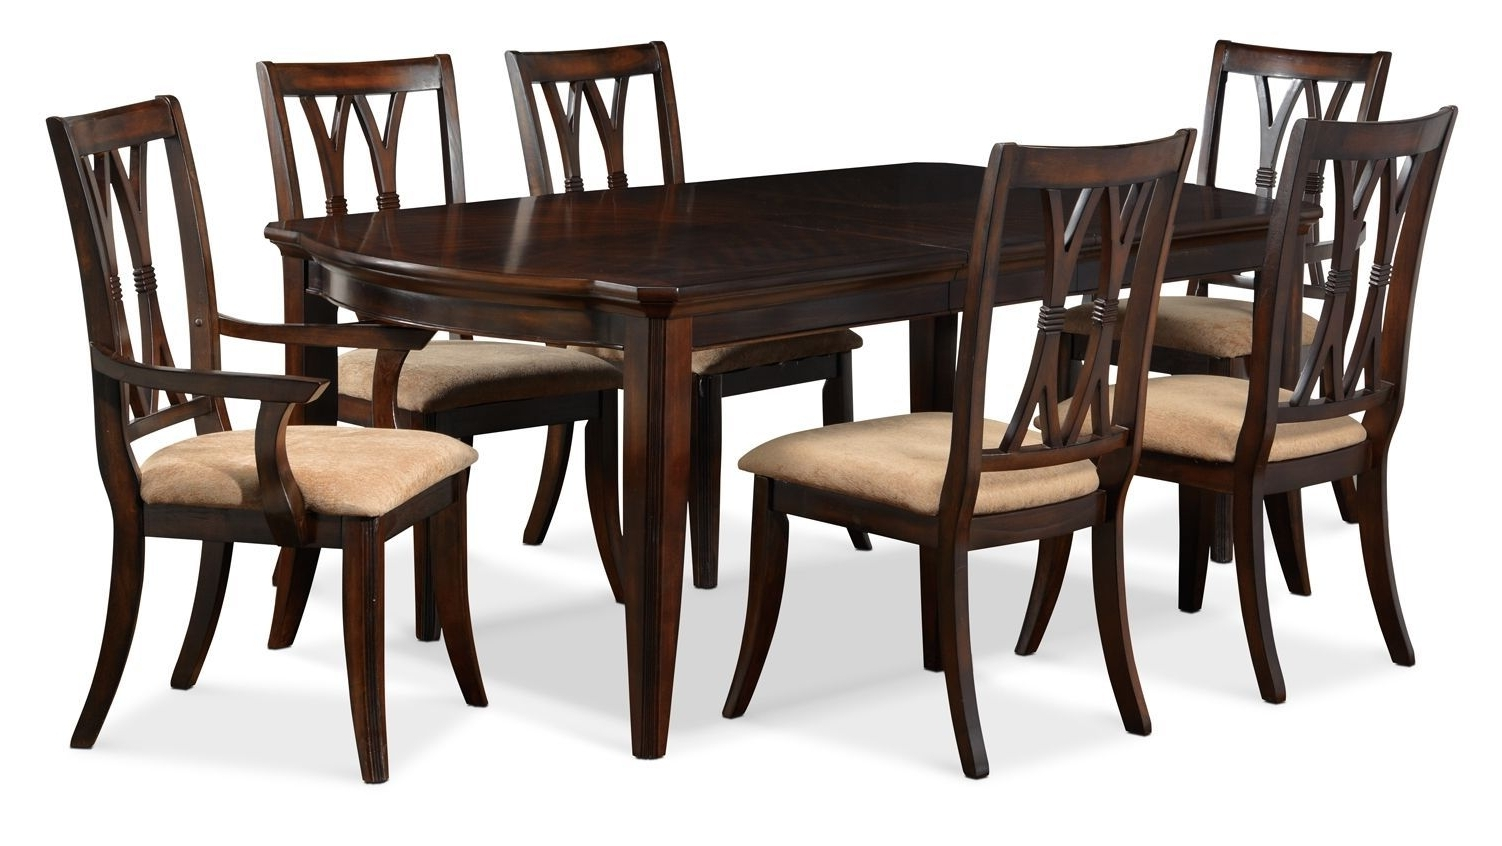 2017 Magnificent 5 Piece Dining Set Wood Breakfast Furniture 4 Chairs And In Leon 7 Piece Dining Sets (Gallery 6 of 25)